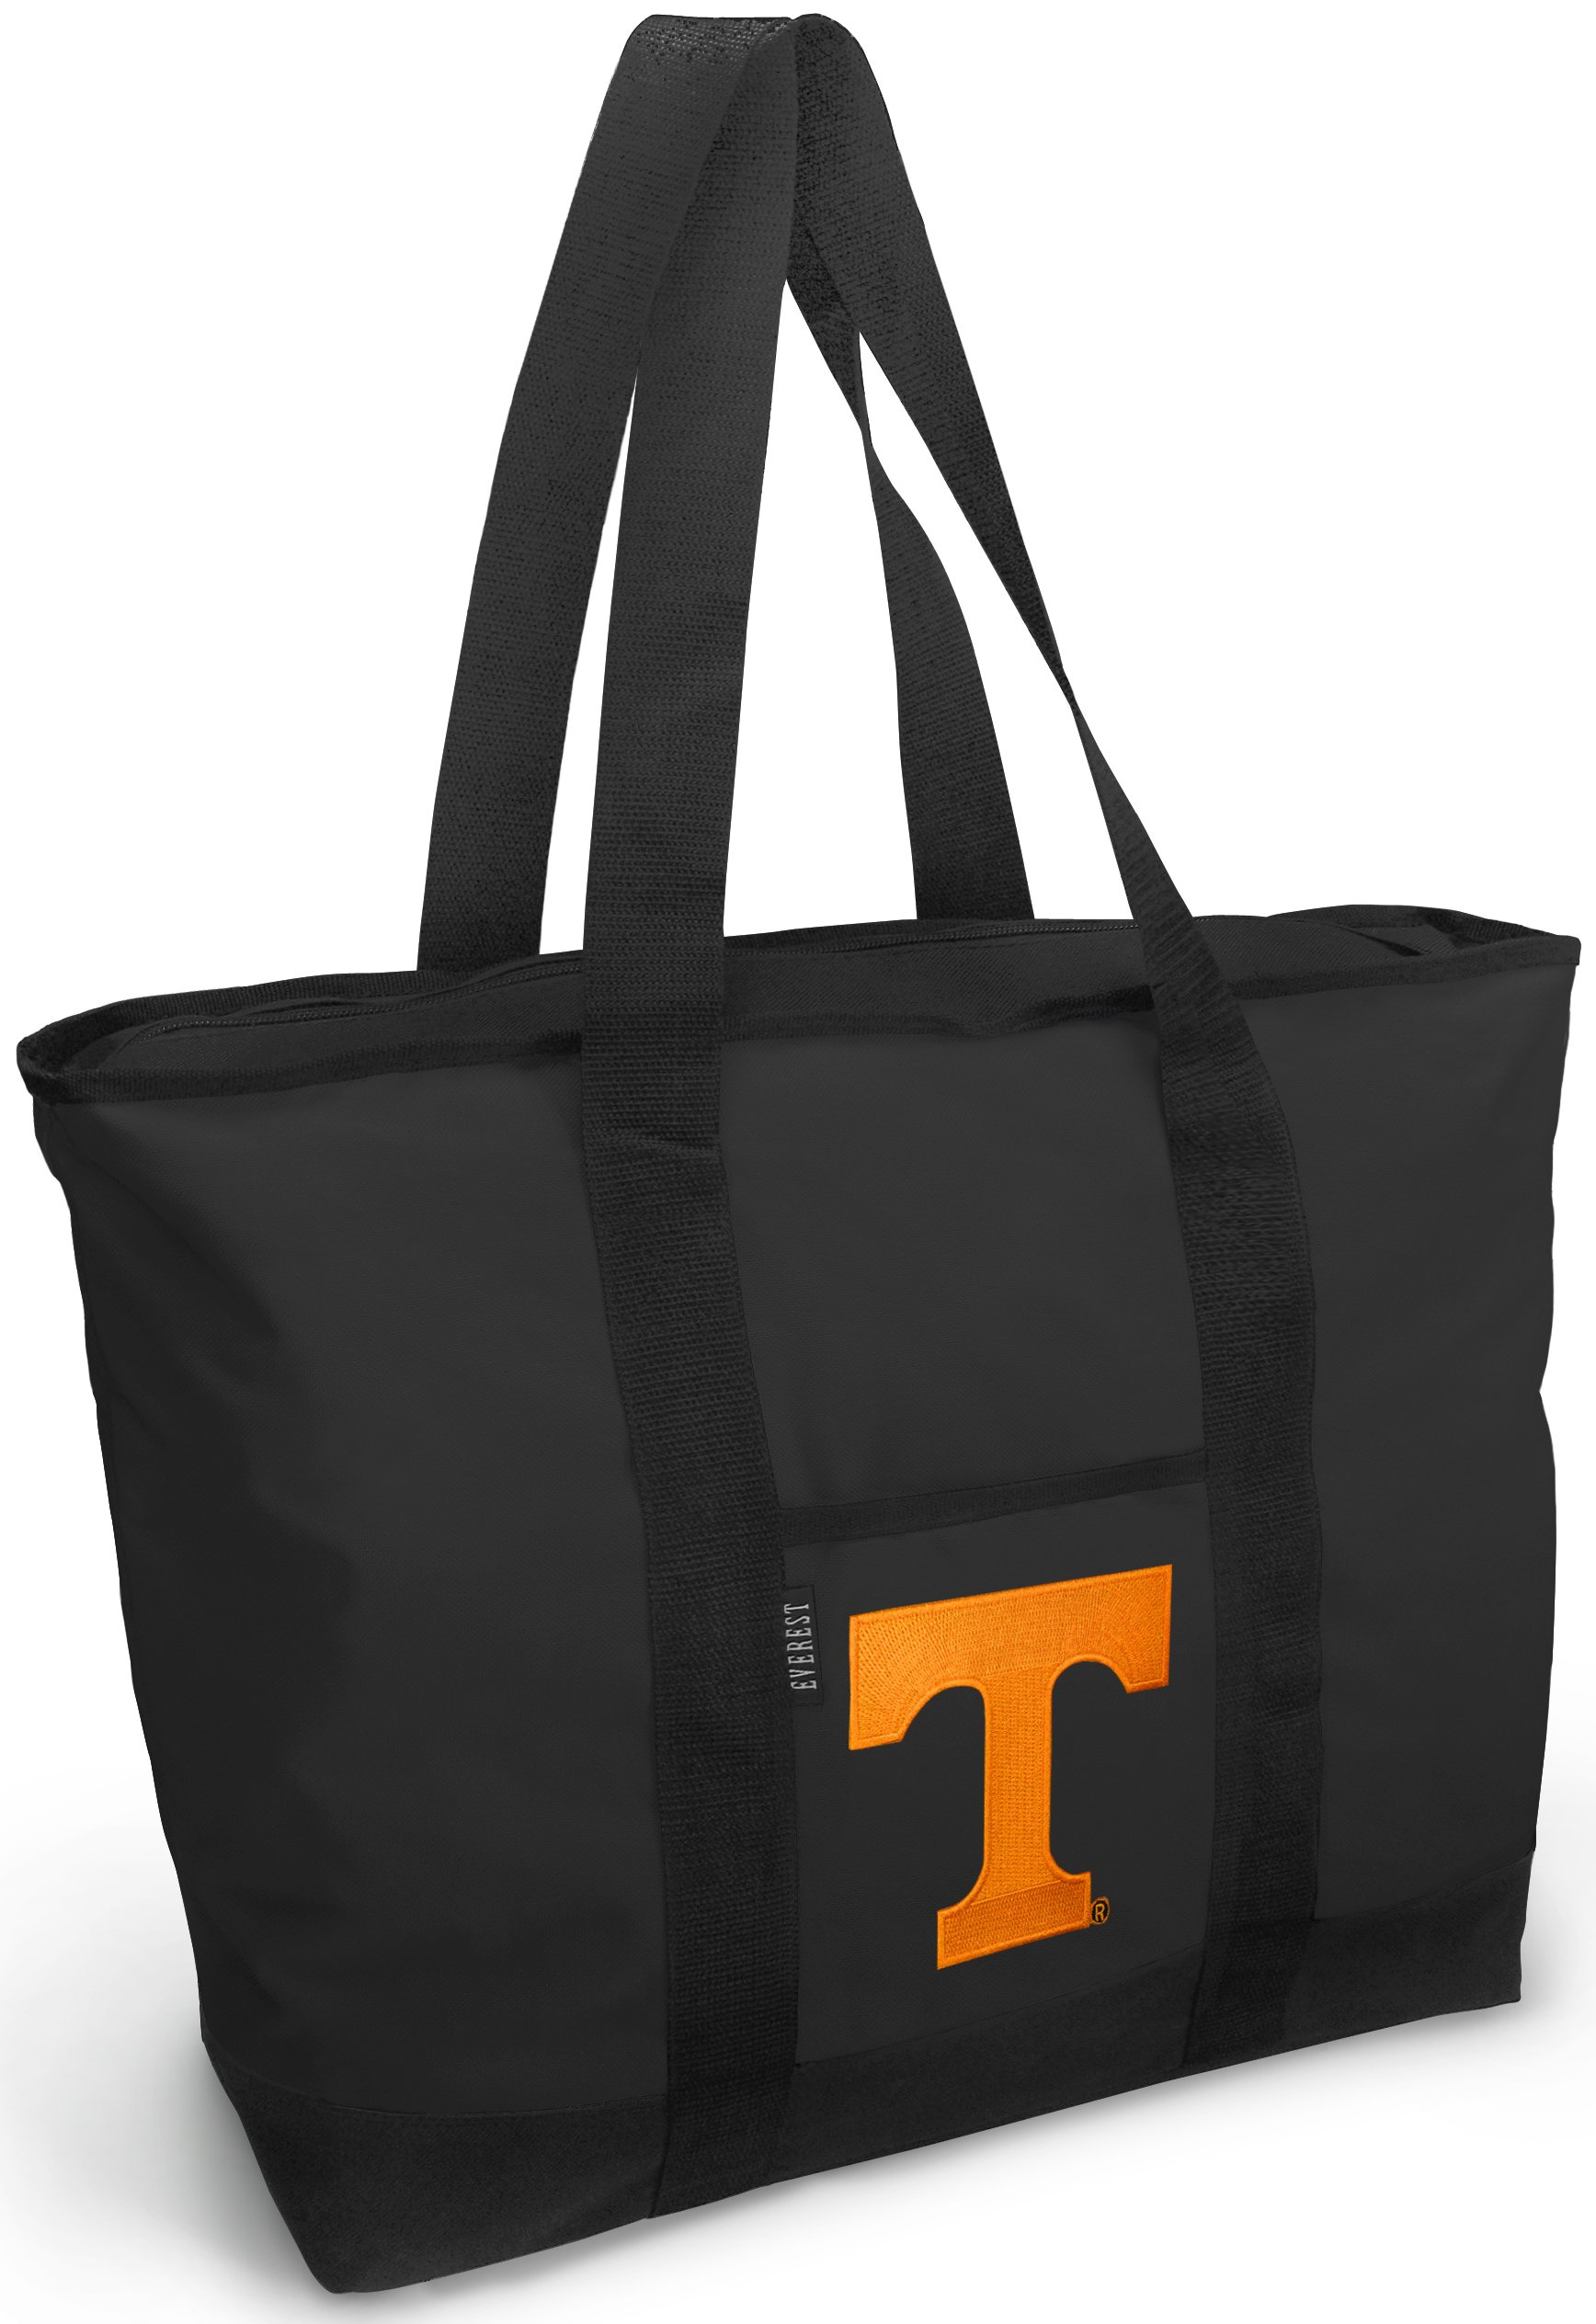 University of Tennessee Tote Bag Best NCAA Tennessee Vols Totes